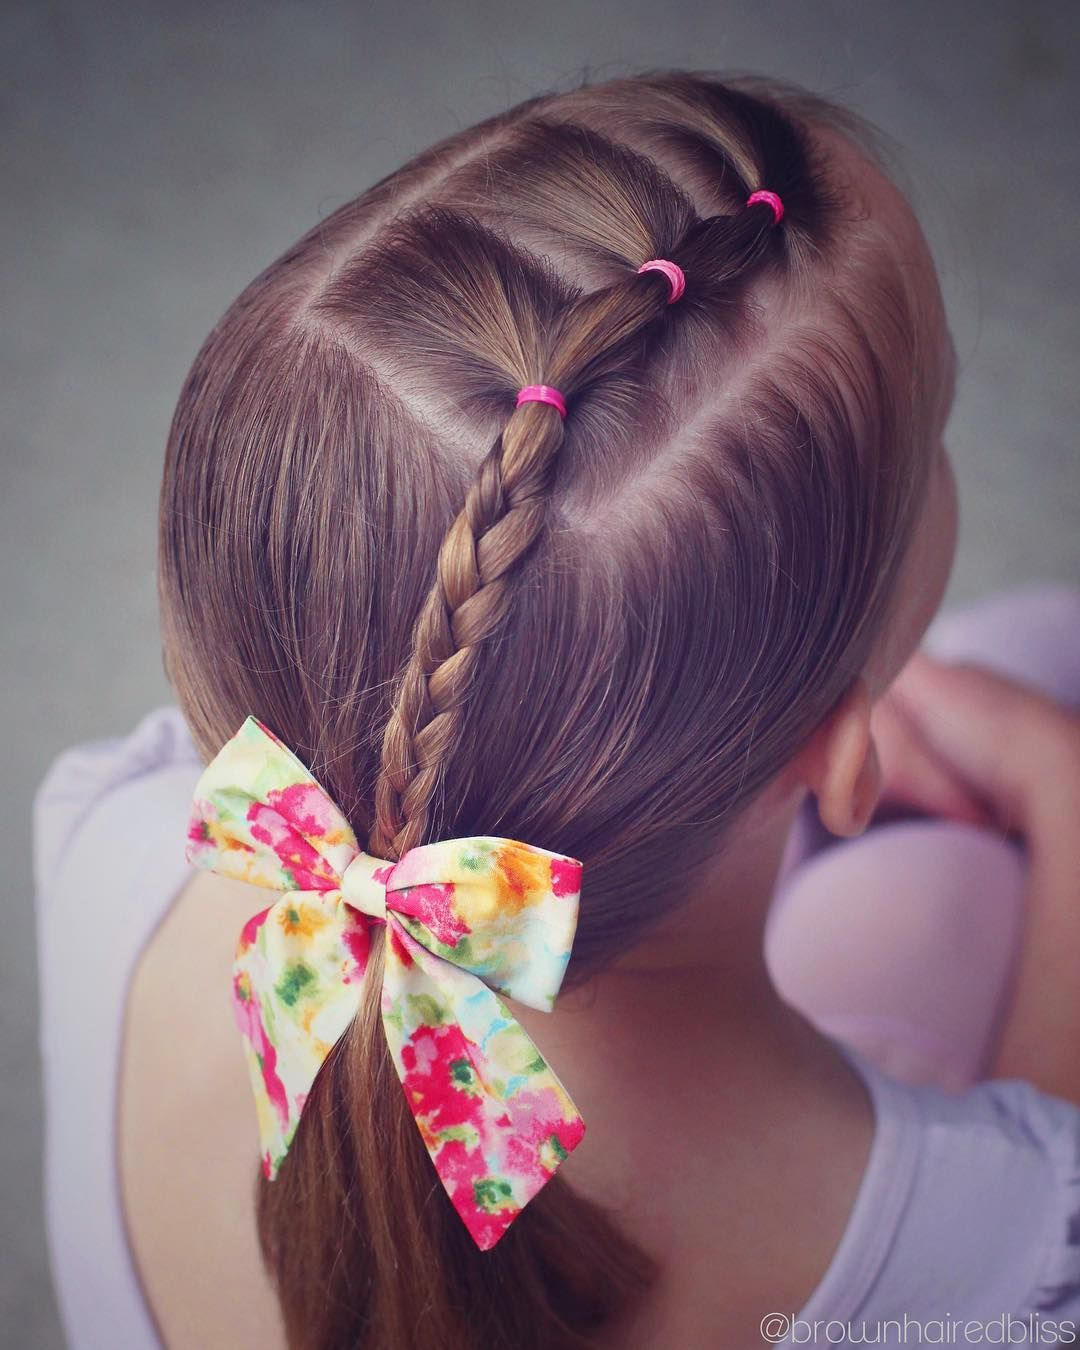 Double side haircut for boys trenza  peinados  pinterest  side ponytails ponytail and dancing